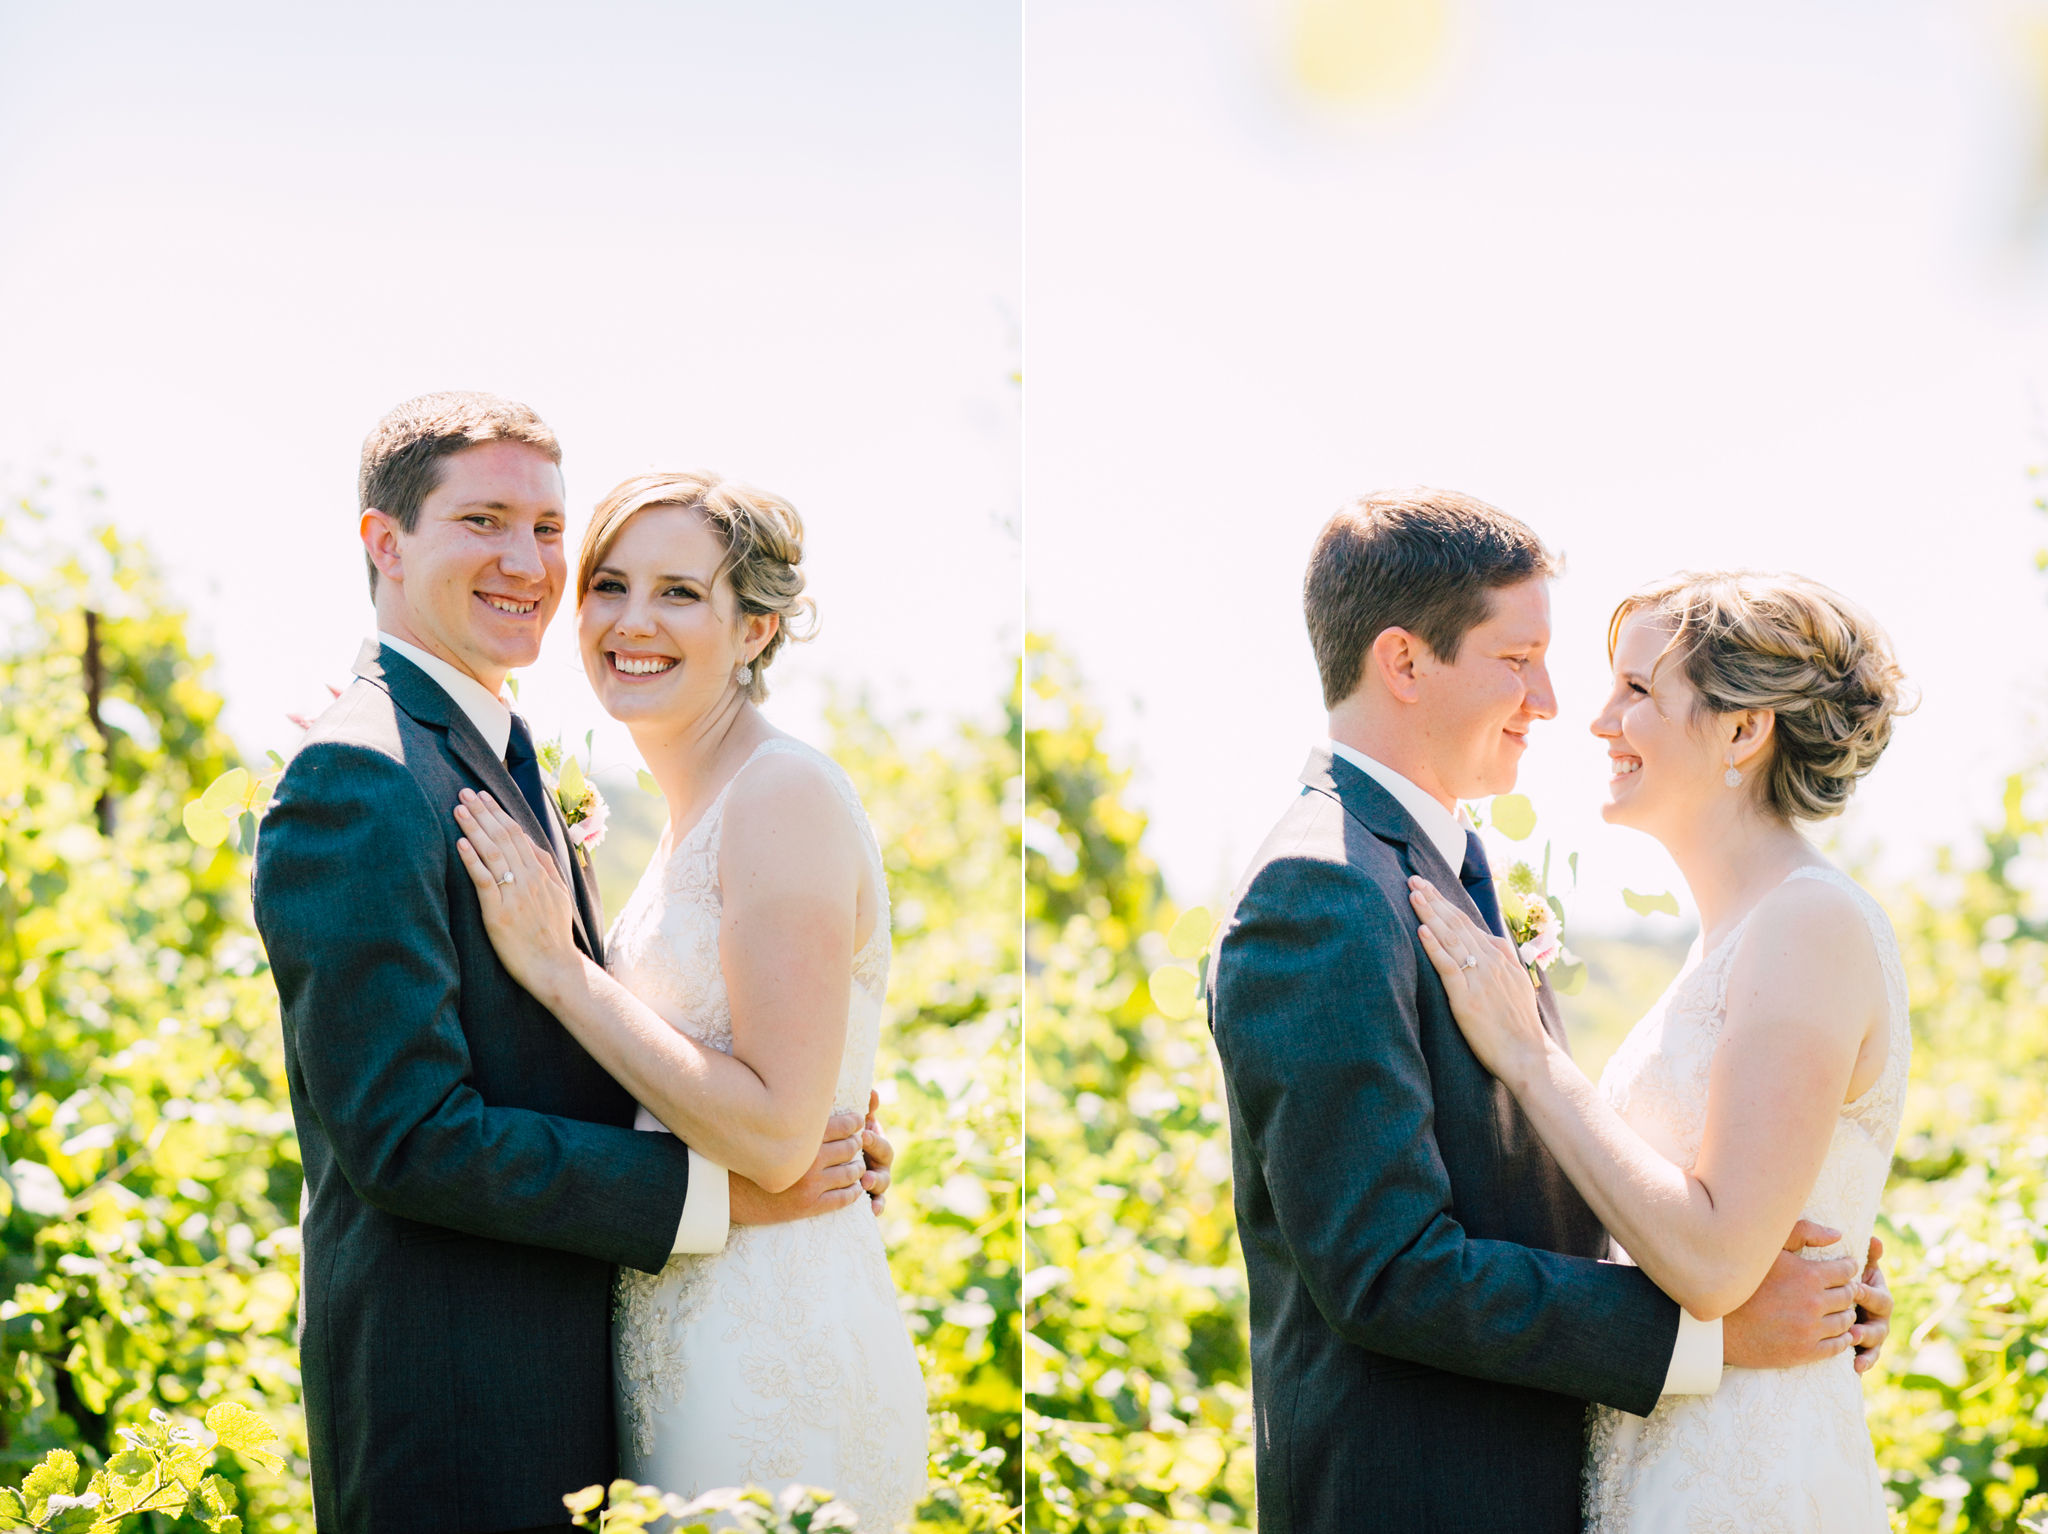 021-bellingham-wedding-photographer-samson-winery-katheryn-moran.jpg